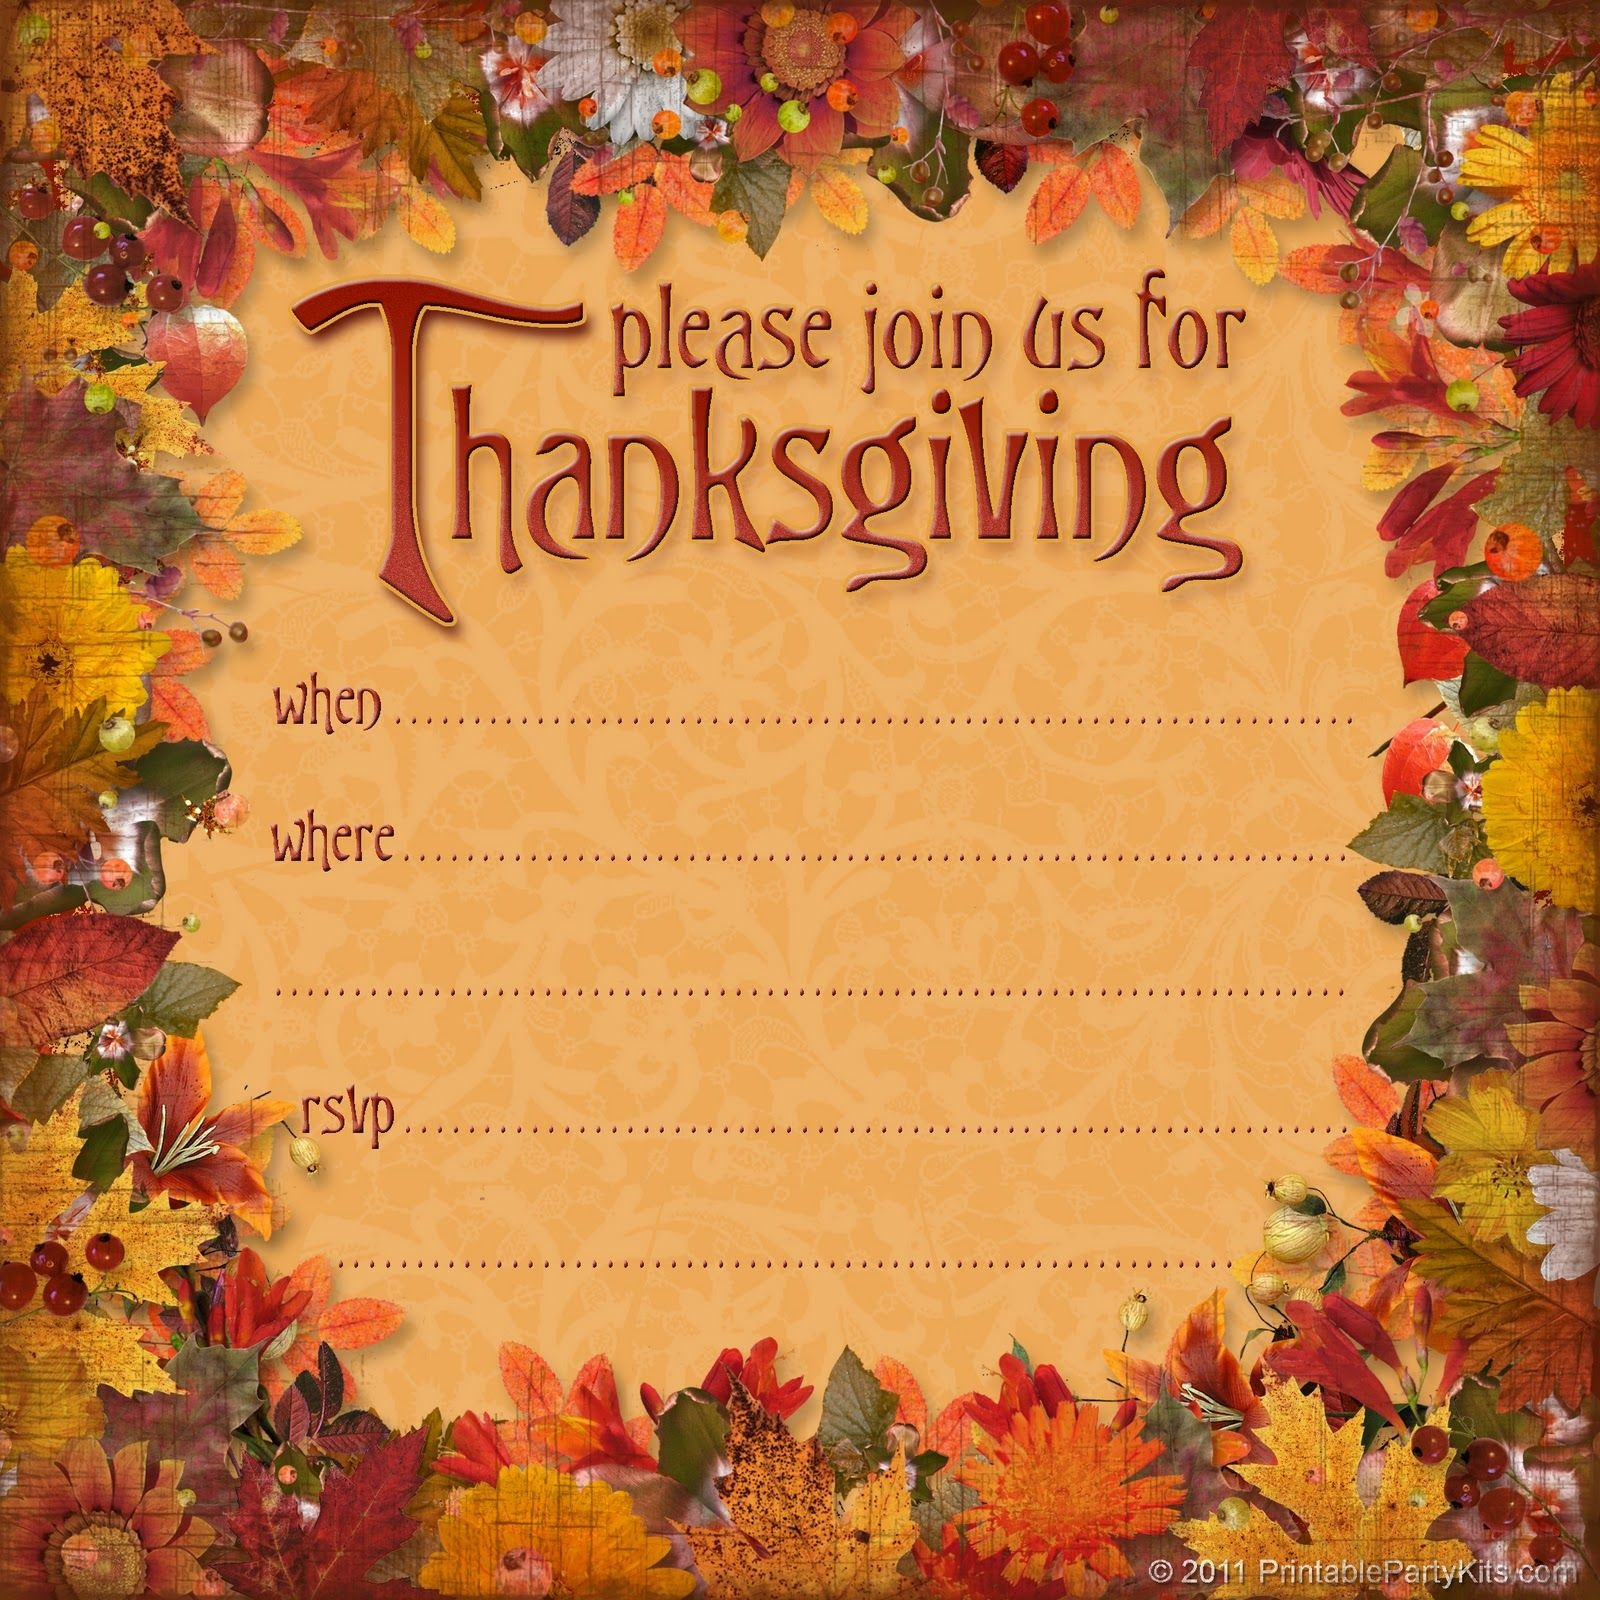 You Can Have Better Idea About Designing A Thanksgiving Party - Free Printable Thanksgiving Invitation Templates